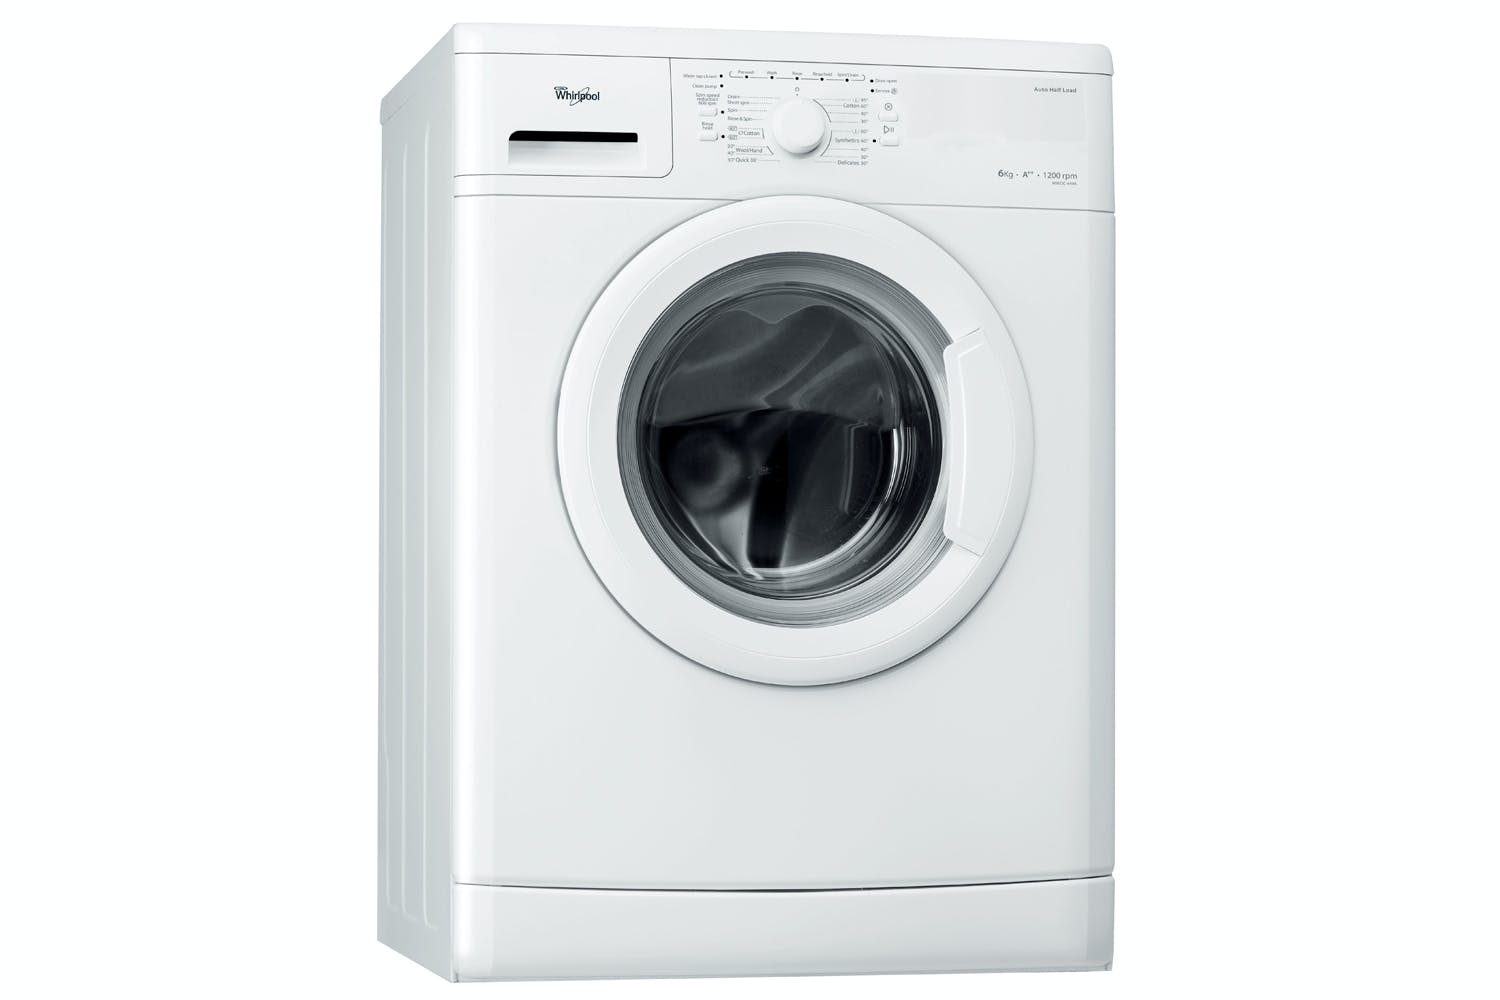 Questions To Ask When Buying A Washing Machine